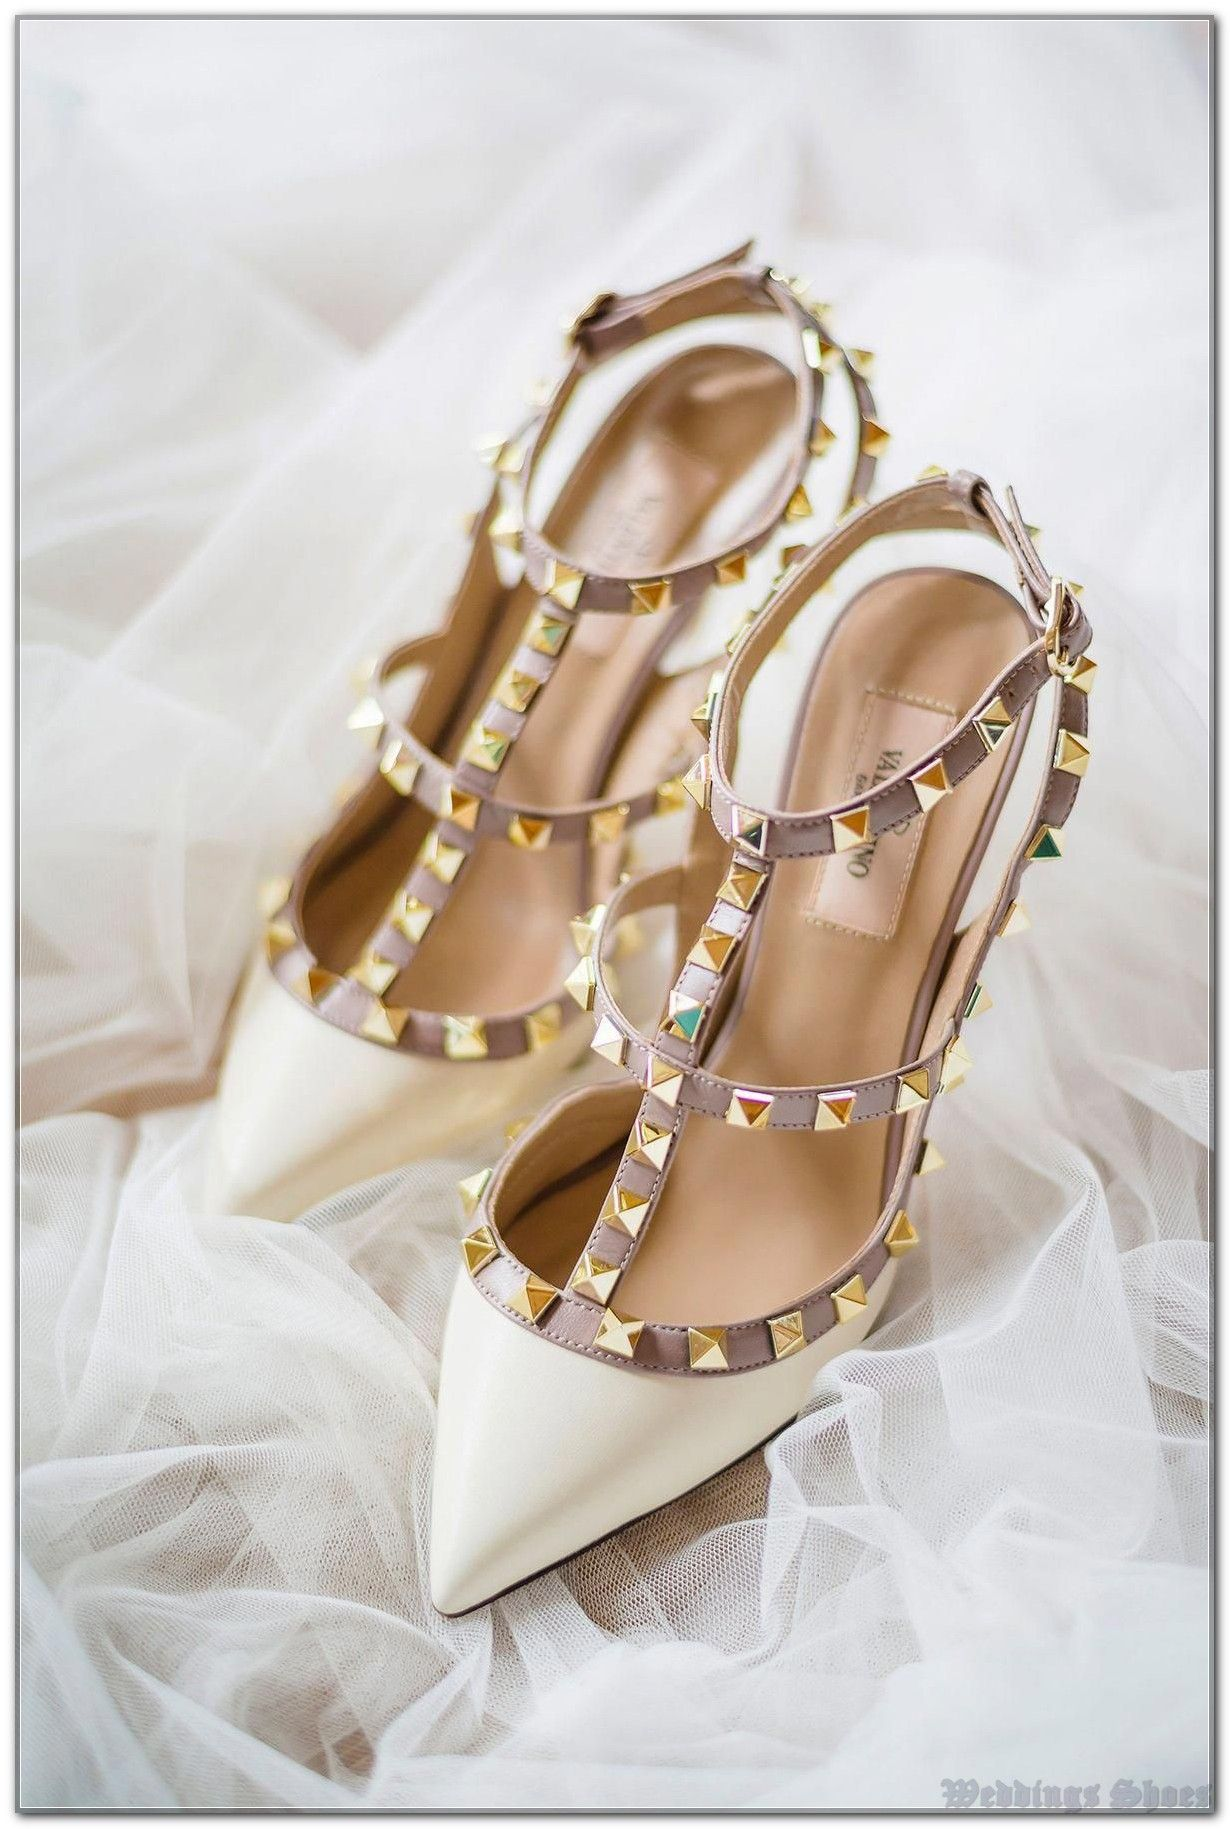 How I Improved My Wedding Shoes In One Easy Lesson